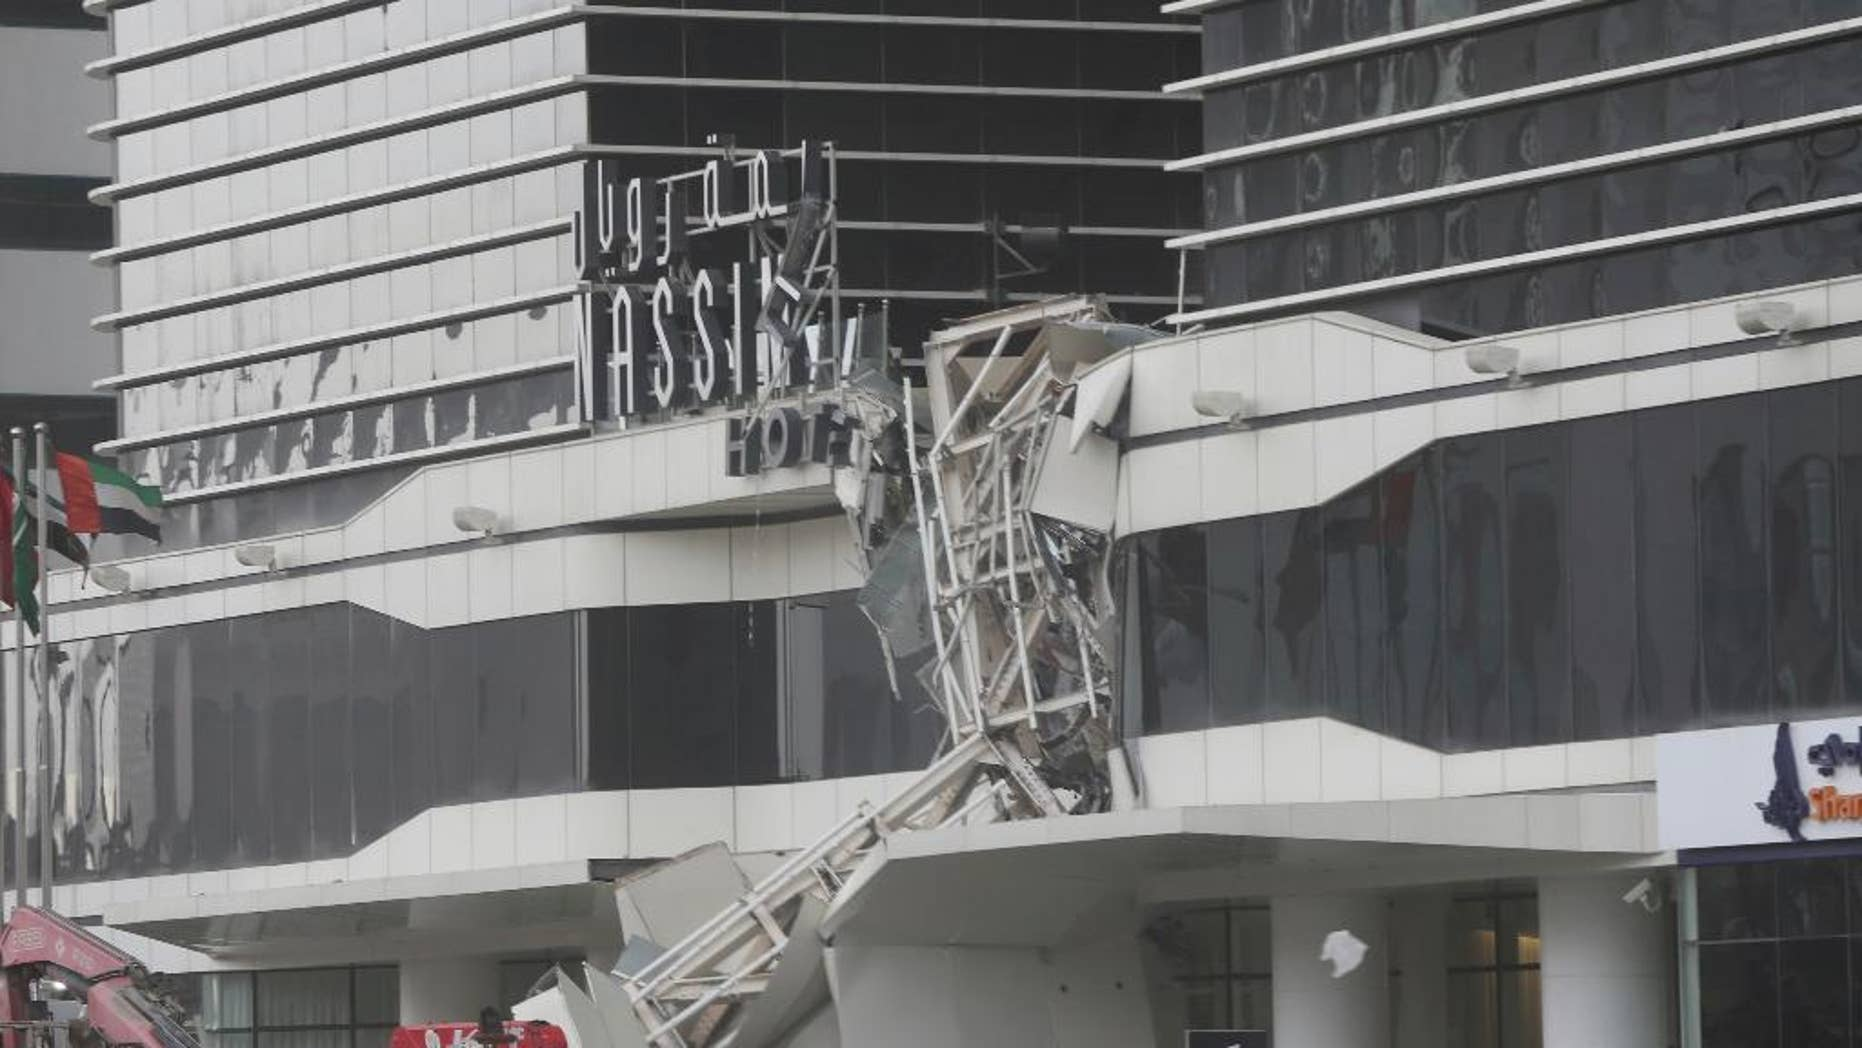 A construction crane has collapsed during high winds on the main highway running through Dubai, disrupting traffic in the heart of the Mideast's commercial hub in Dubai, United Arab Emirates, Friday, Feb. 3, 2017. (AP Photo/Kamran Jebreili)